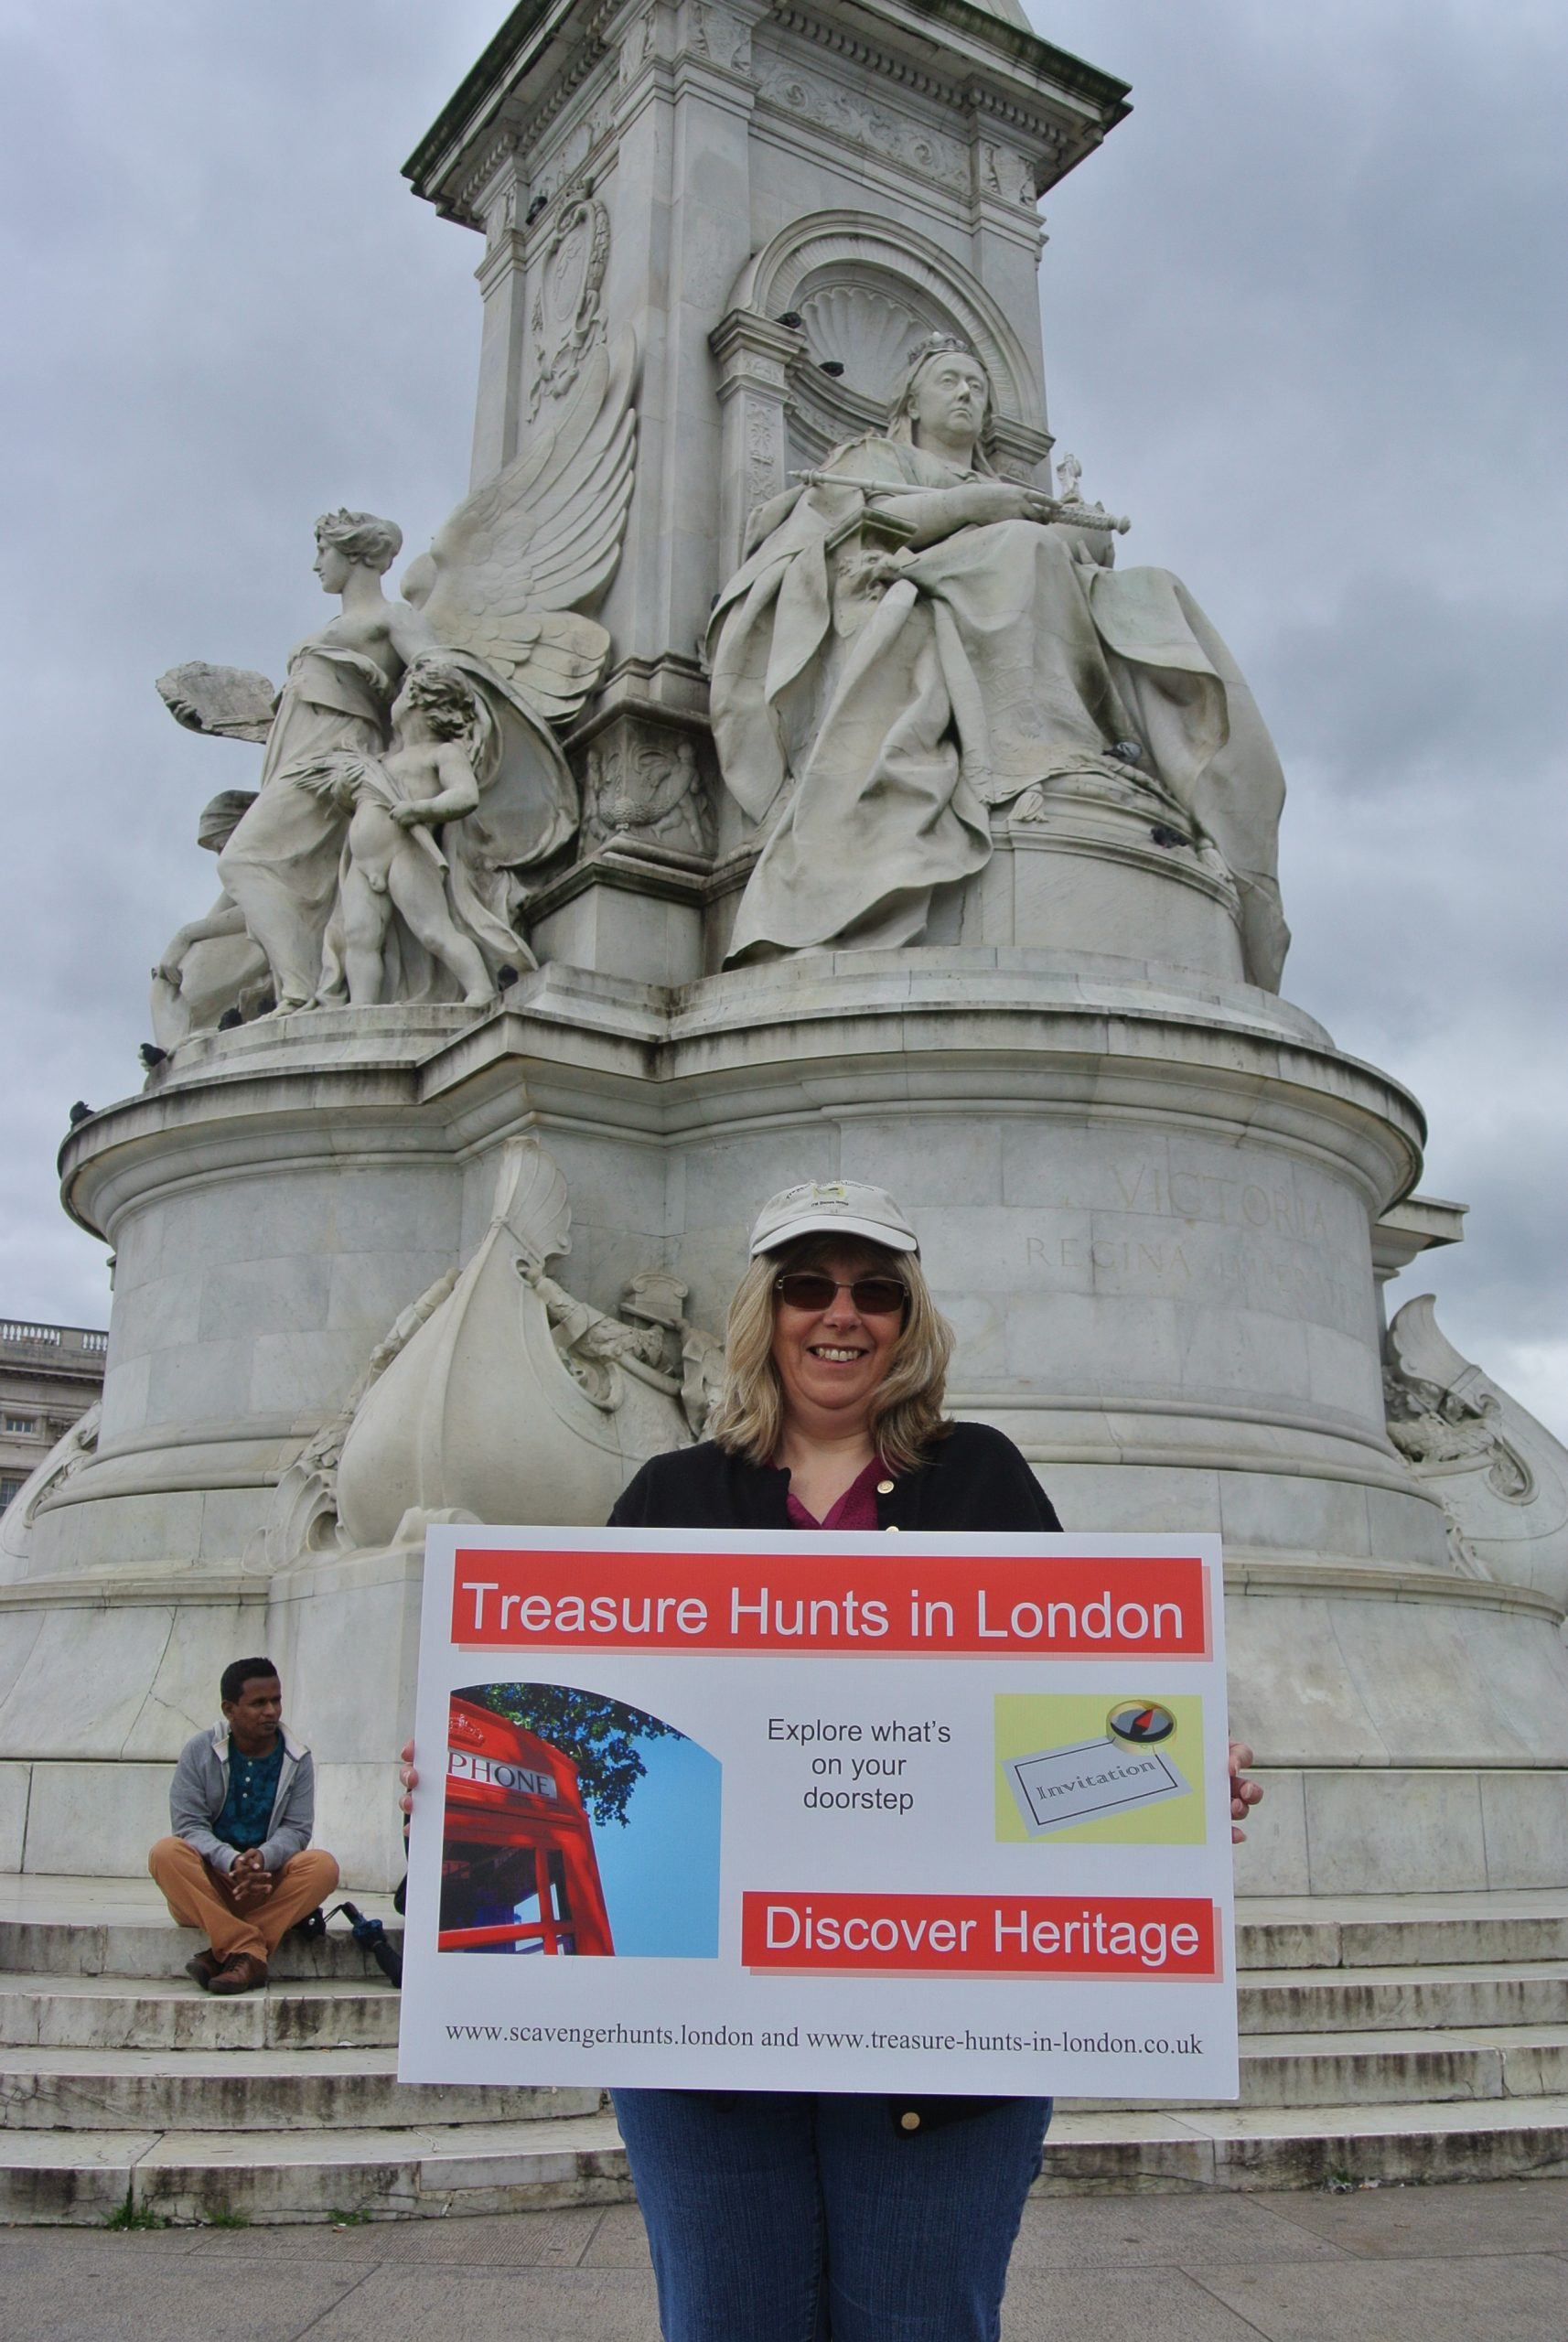 Meeting point for Treasure Hunts in London